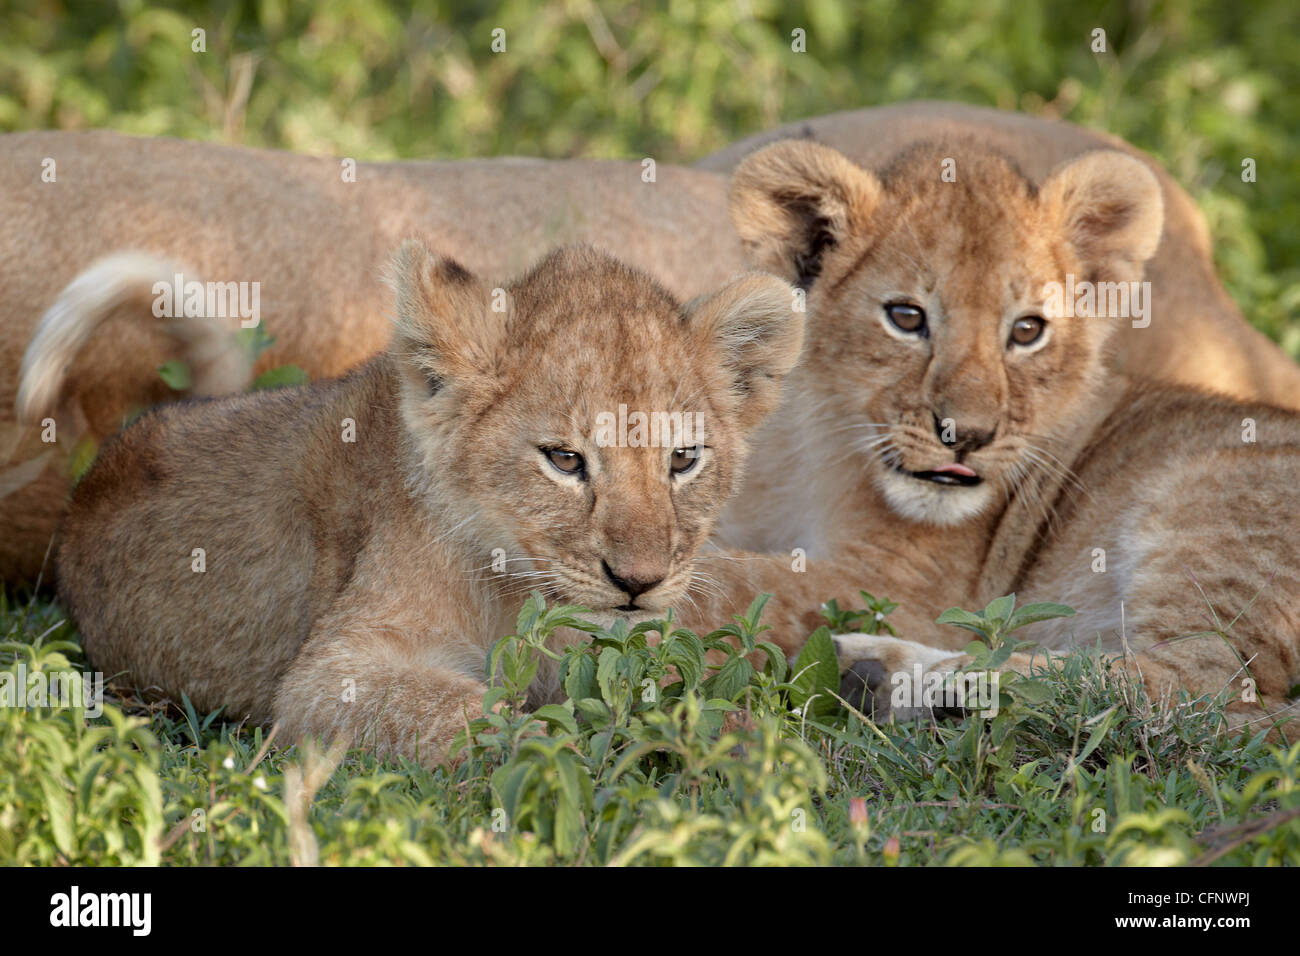 Two young lion (Panthera leo) cubs, Serengeti National Park, Tanzania, East Africa, Africa - Stock Image